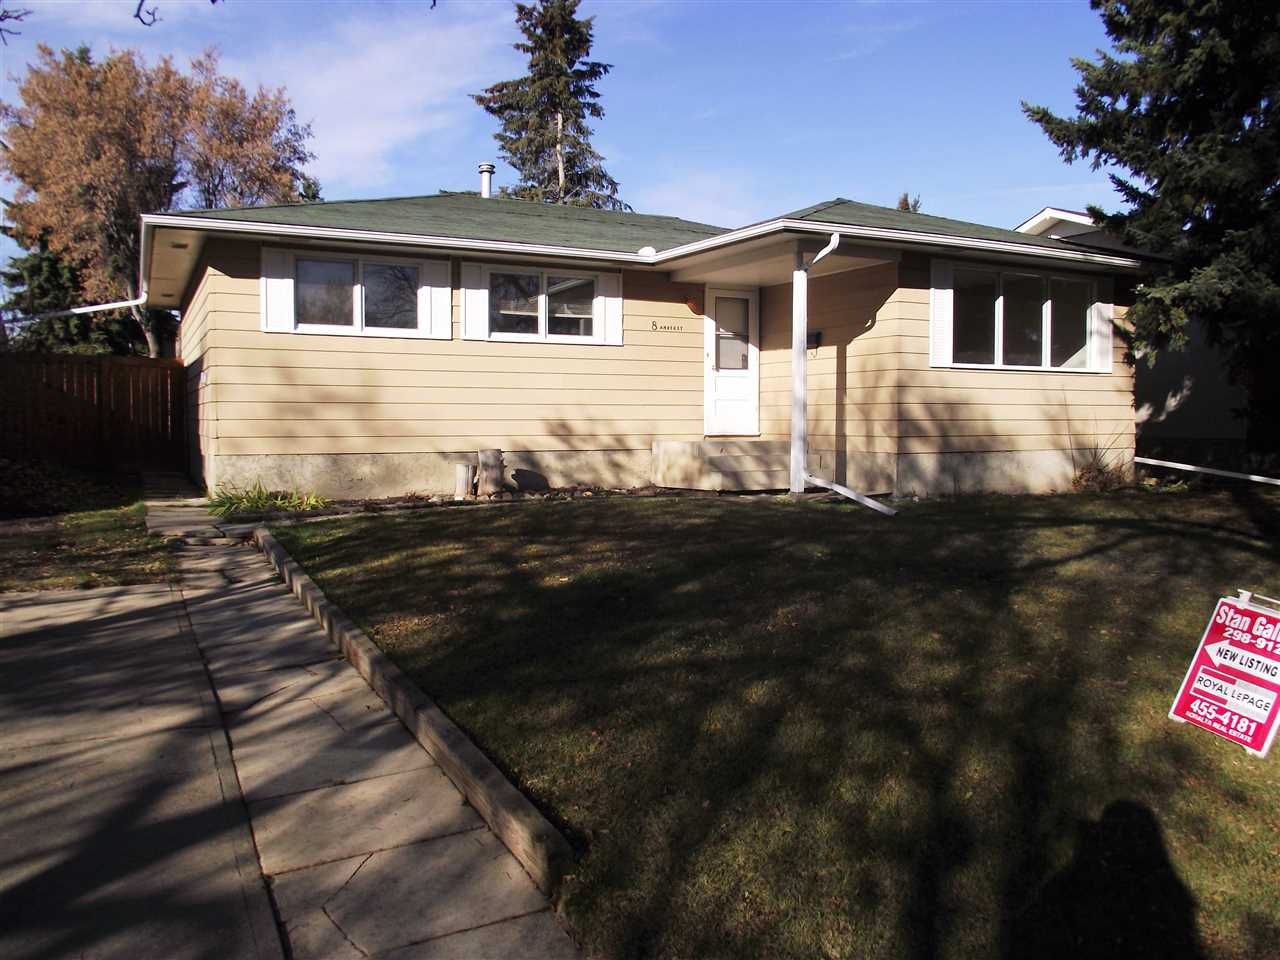 Main Photo: 8 Amherst Crescent: St. Albert House for sale : MLS®# E4141947